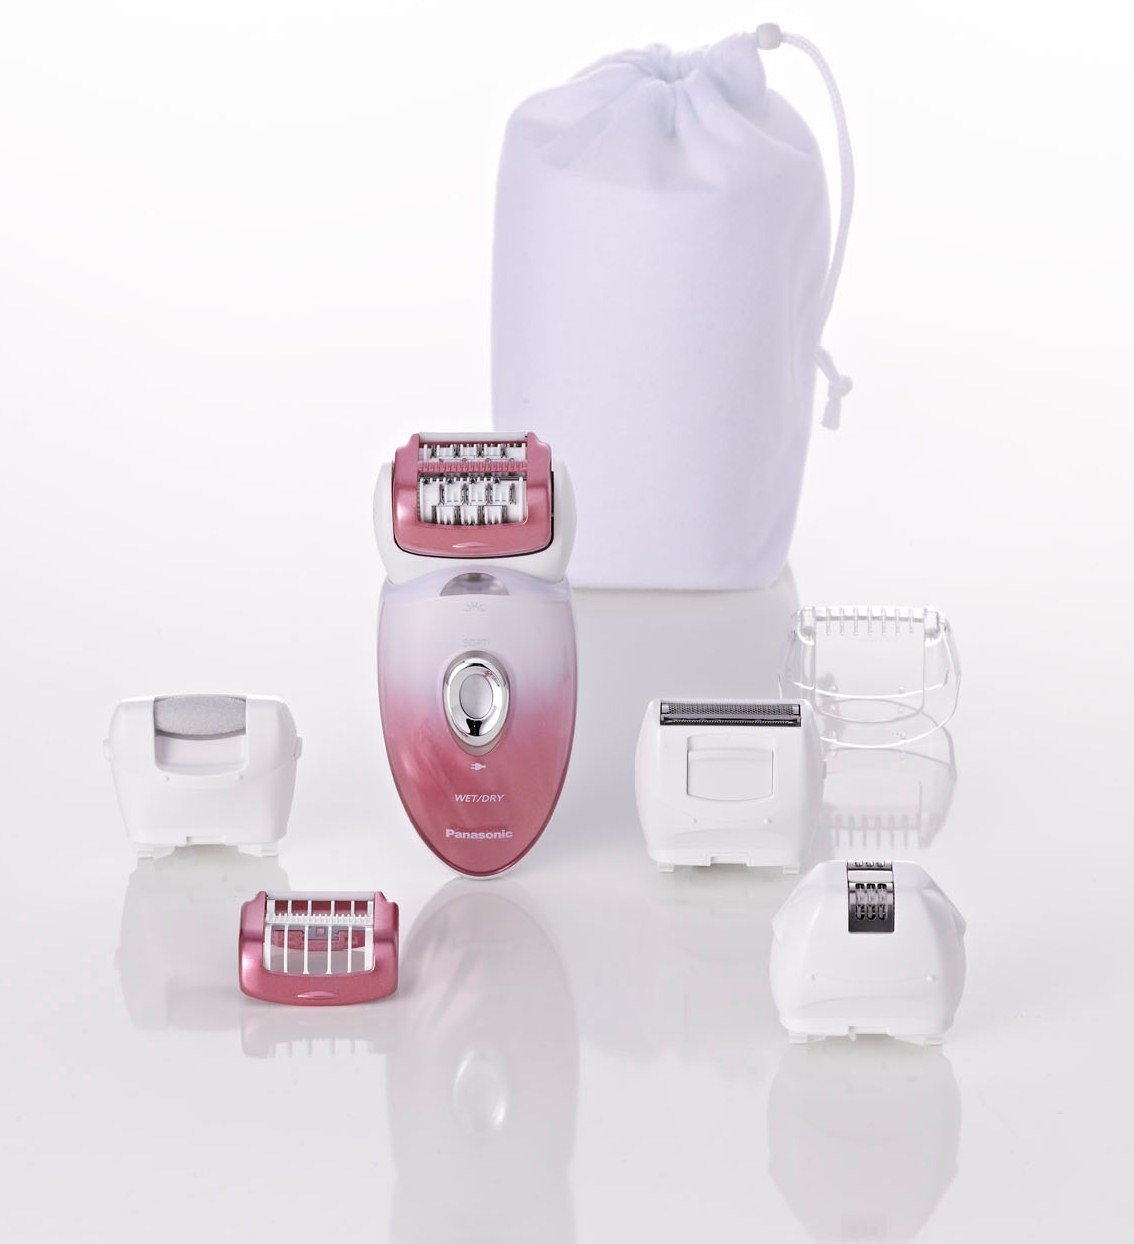 Depilator and epilator: differences, advantages, features and reviews 66